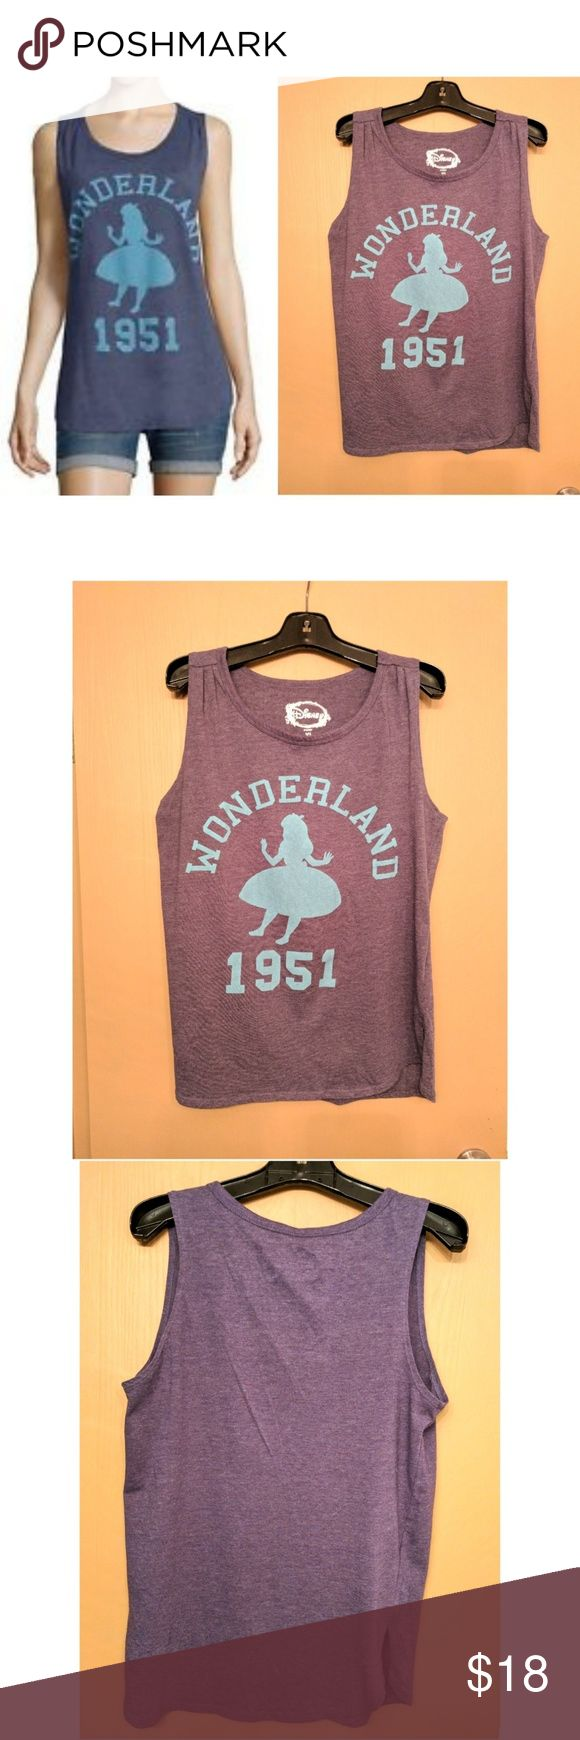 """🎀NEW Wonderland 1951 Disney Tanktop This awesome Disney classic Alice in Wonderland tank is perfect for dressing on any occasion! Navy blue cotton material with light blue Alice outline and Wonderland 1951. Size XL, armpit to armpit measures 19.5"""" unstretched, 27.5"""" length. Slits in sides, back comfortably covers waist, longer than front. Dress with leggings, jeans, shorts... Possibilities are endless! NWOT UNUSED NO DAMAGES. Grab yours for less and look great in this awesome tanktop…"""